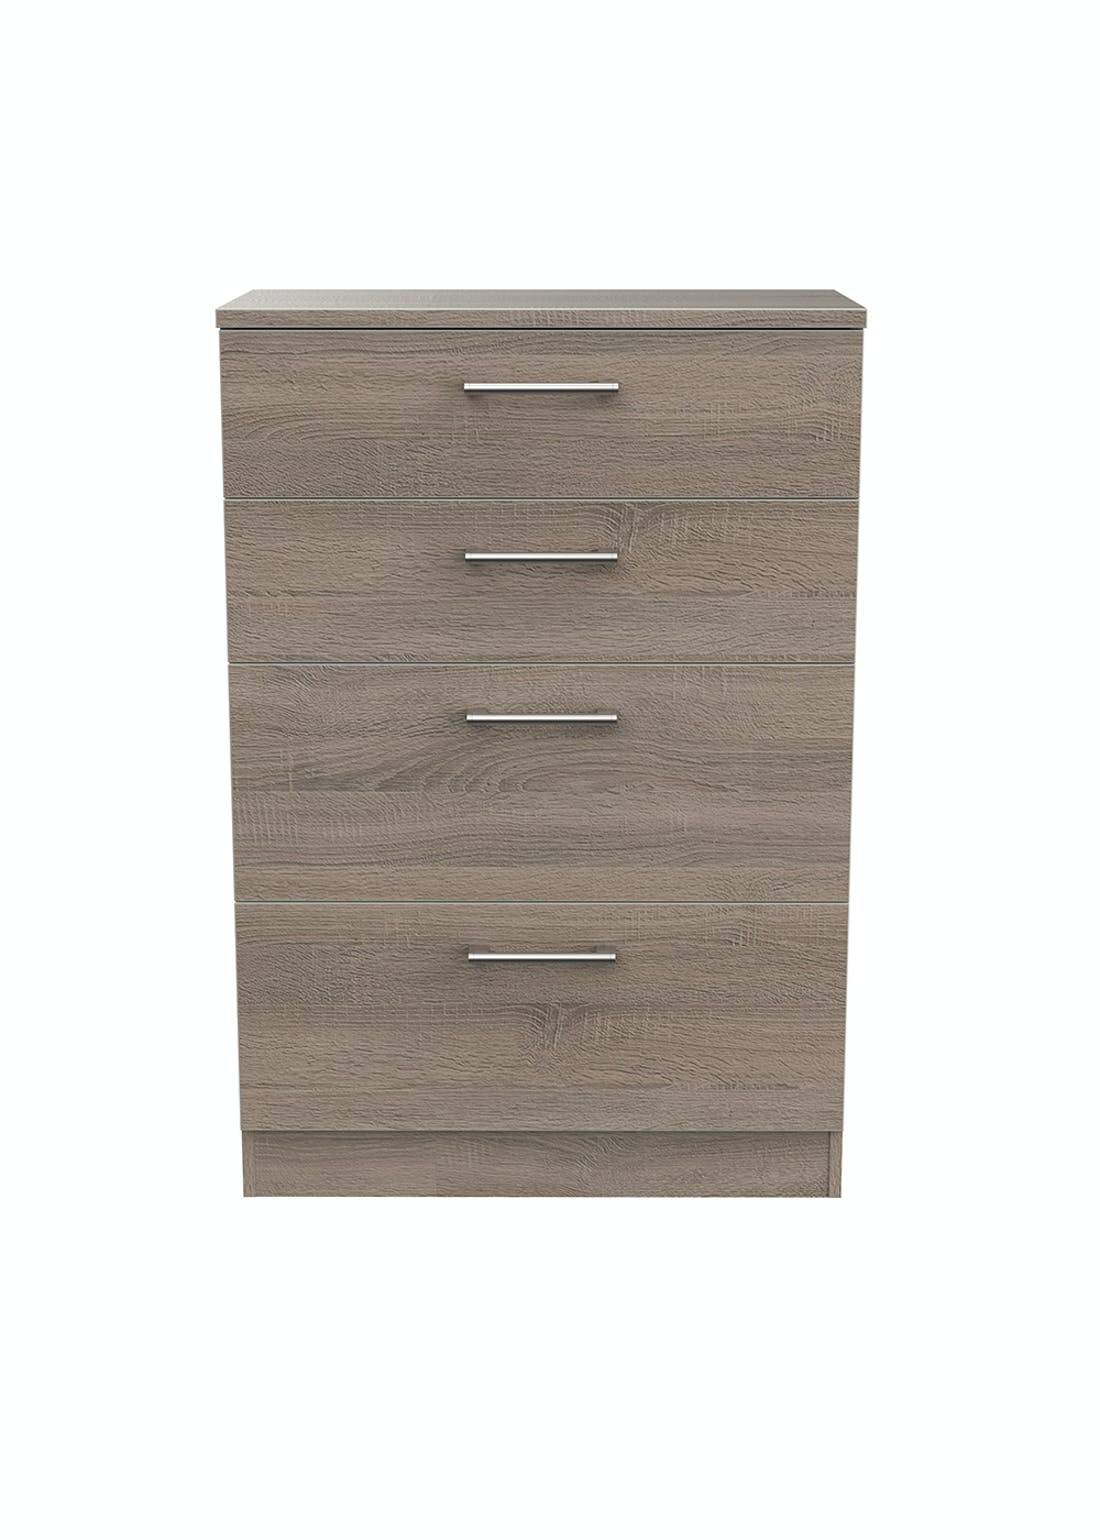 Swift Bari 4 Drawer Deep Chest (107.5cm x 76.5cm x 41.5cm)